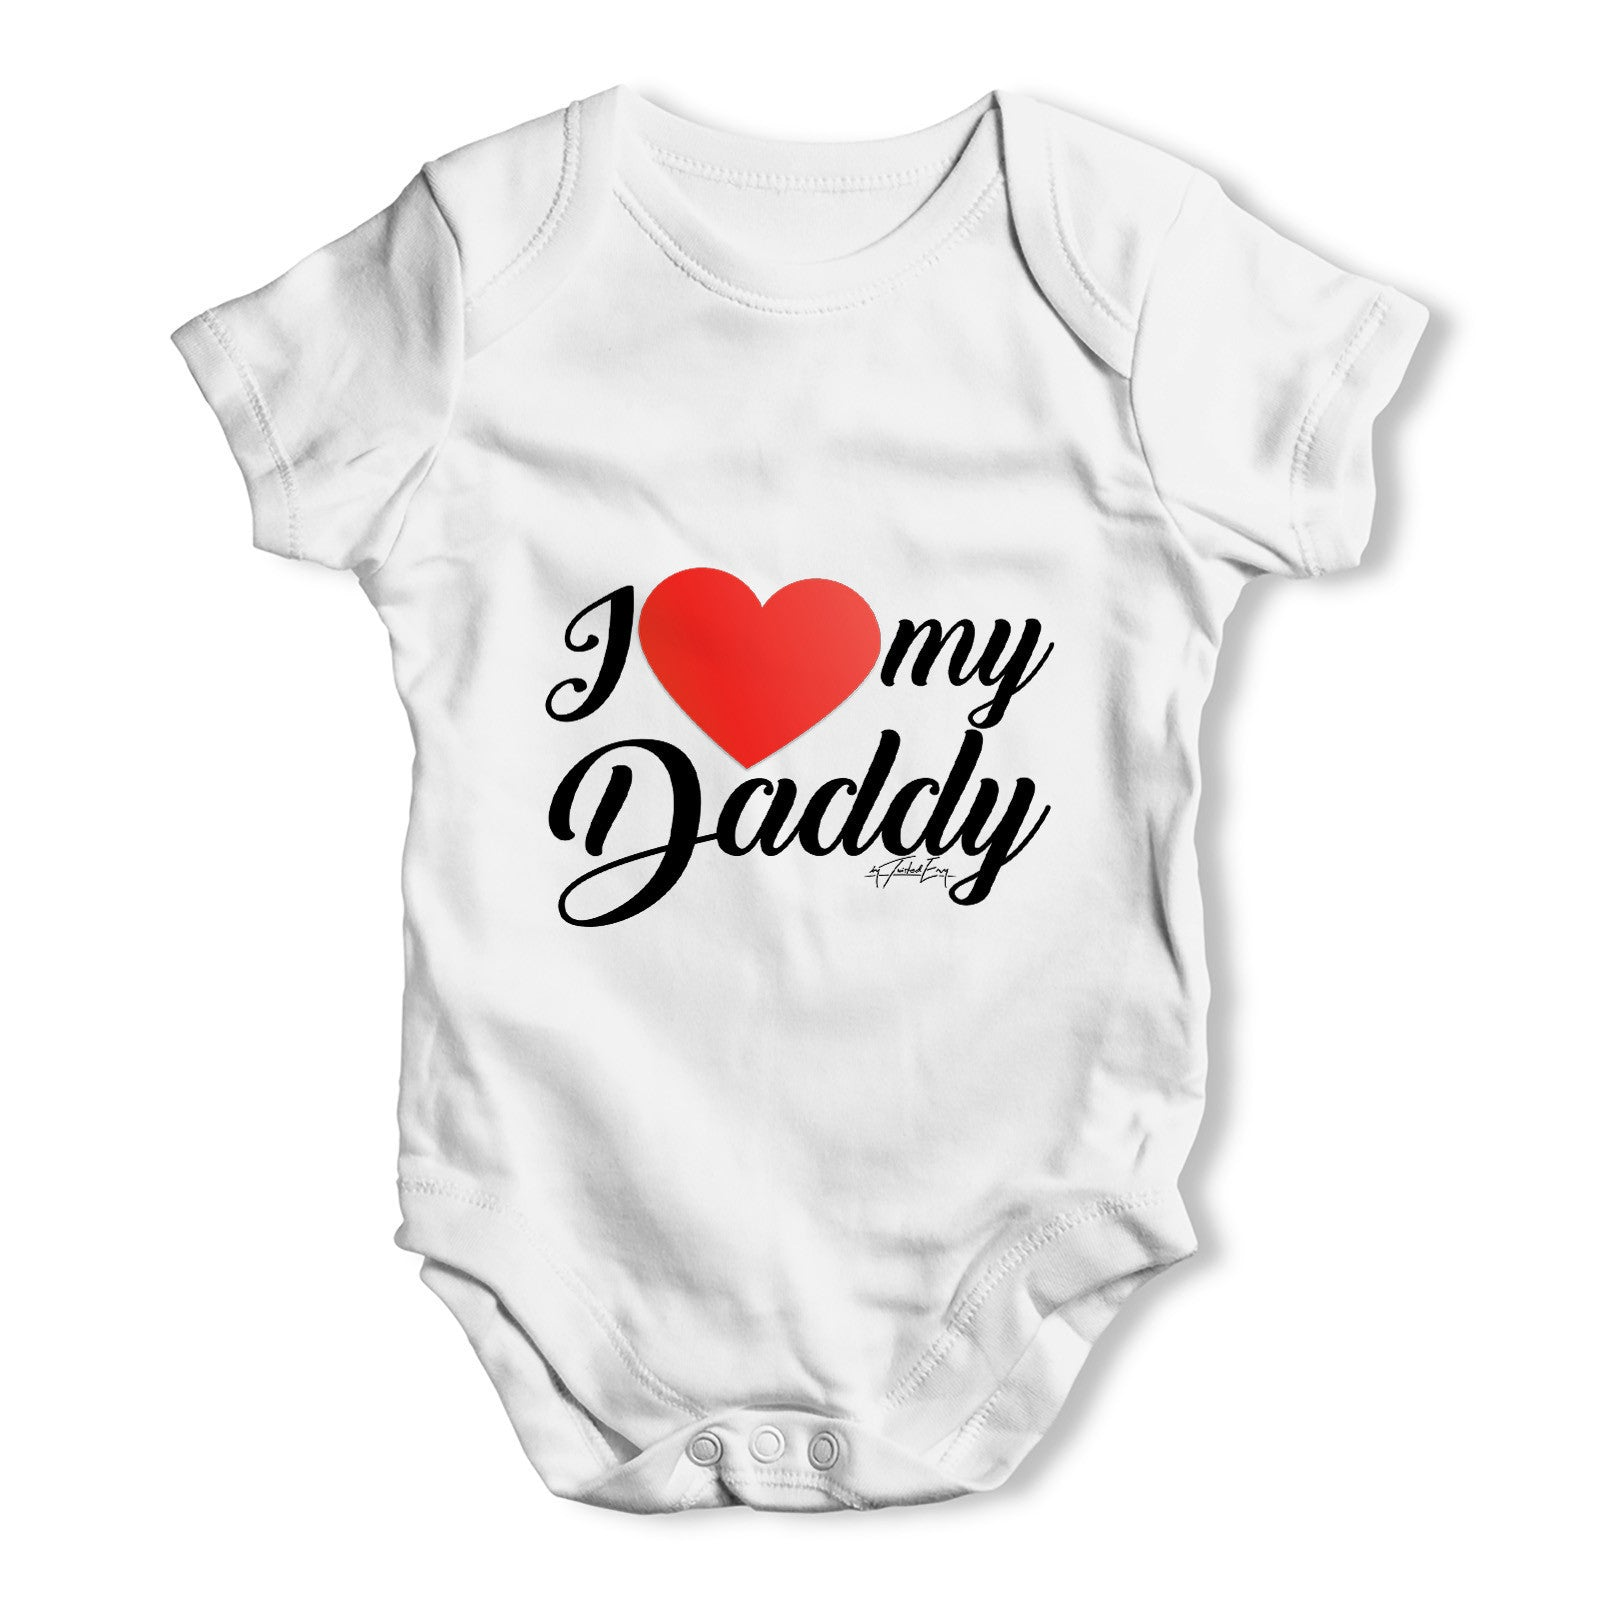 I Love My Daddy Baby Grow Bodysuit – inkrocks